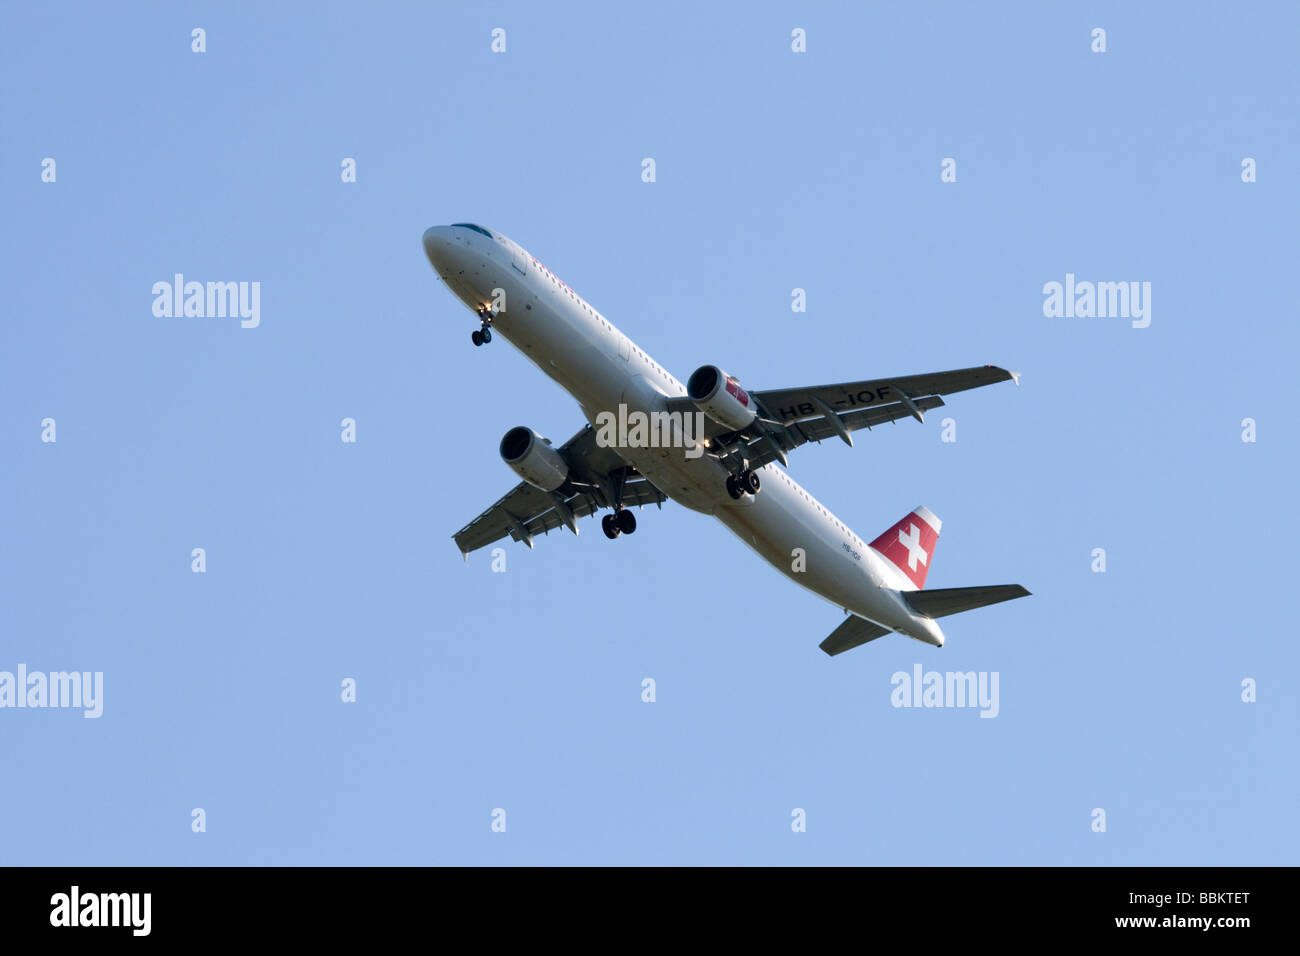 Commercial jet airliner, Swiss International Airlines Airbus A321-111 - Stock Image